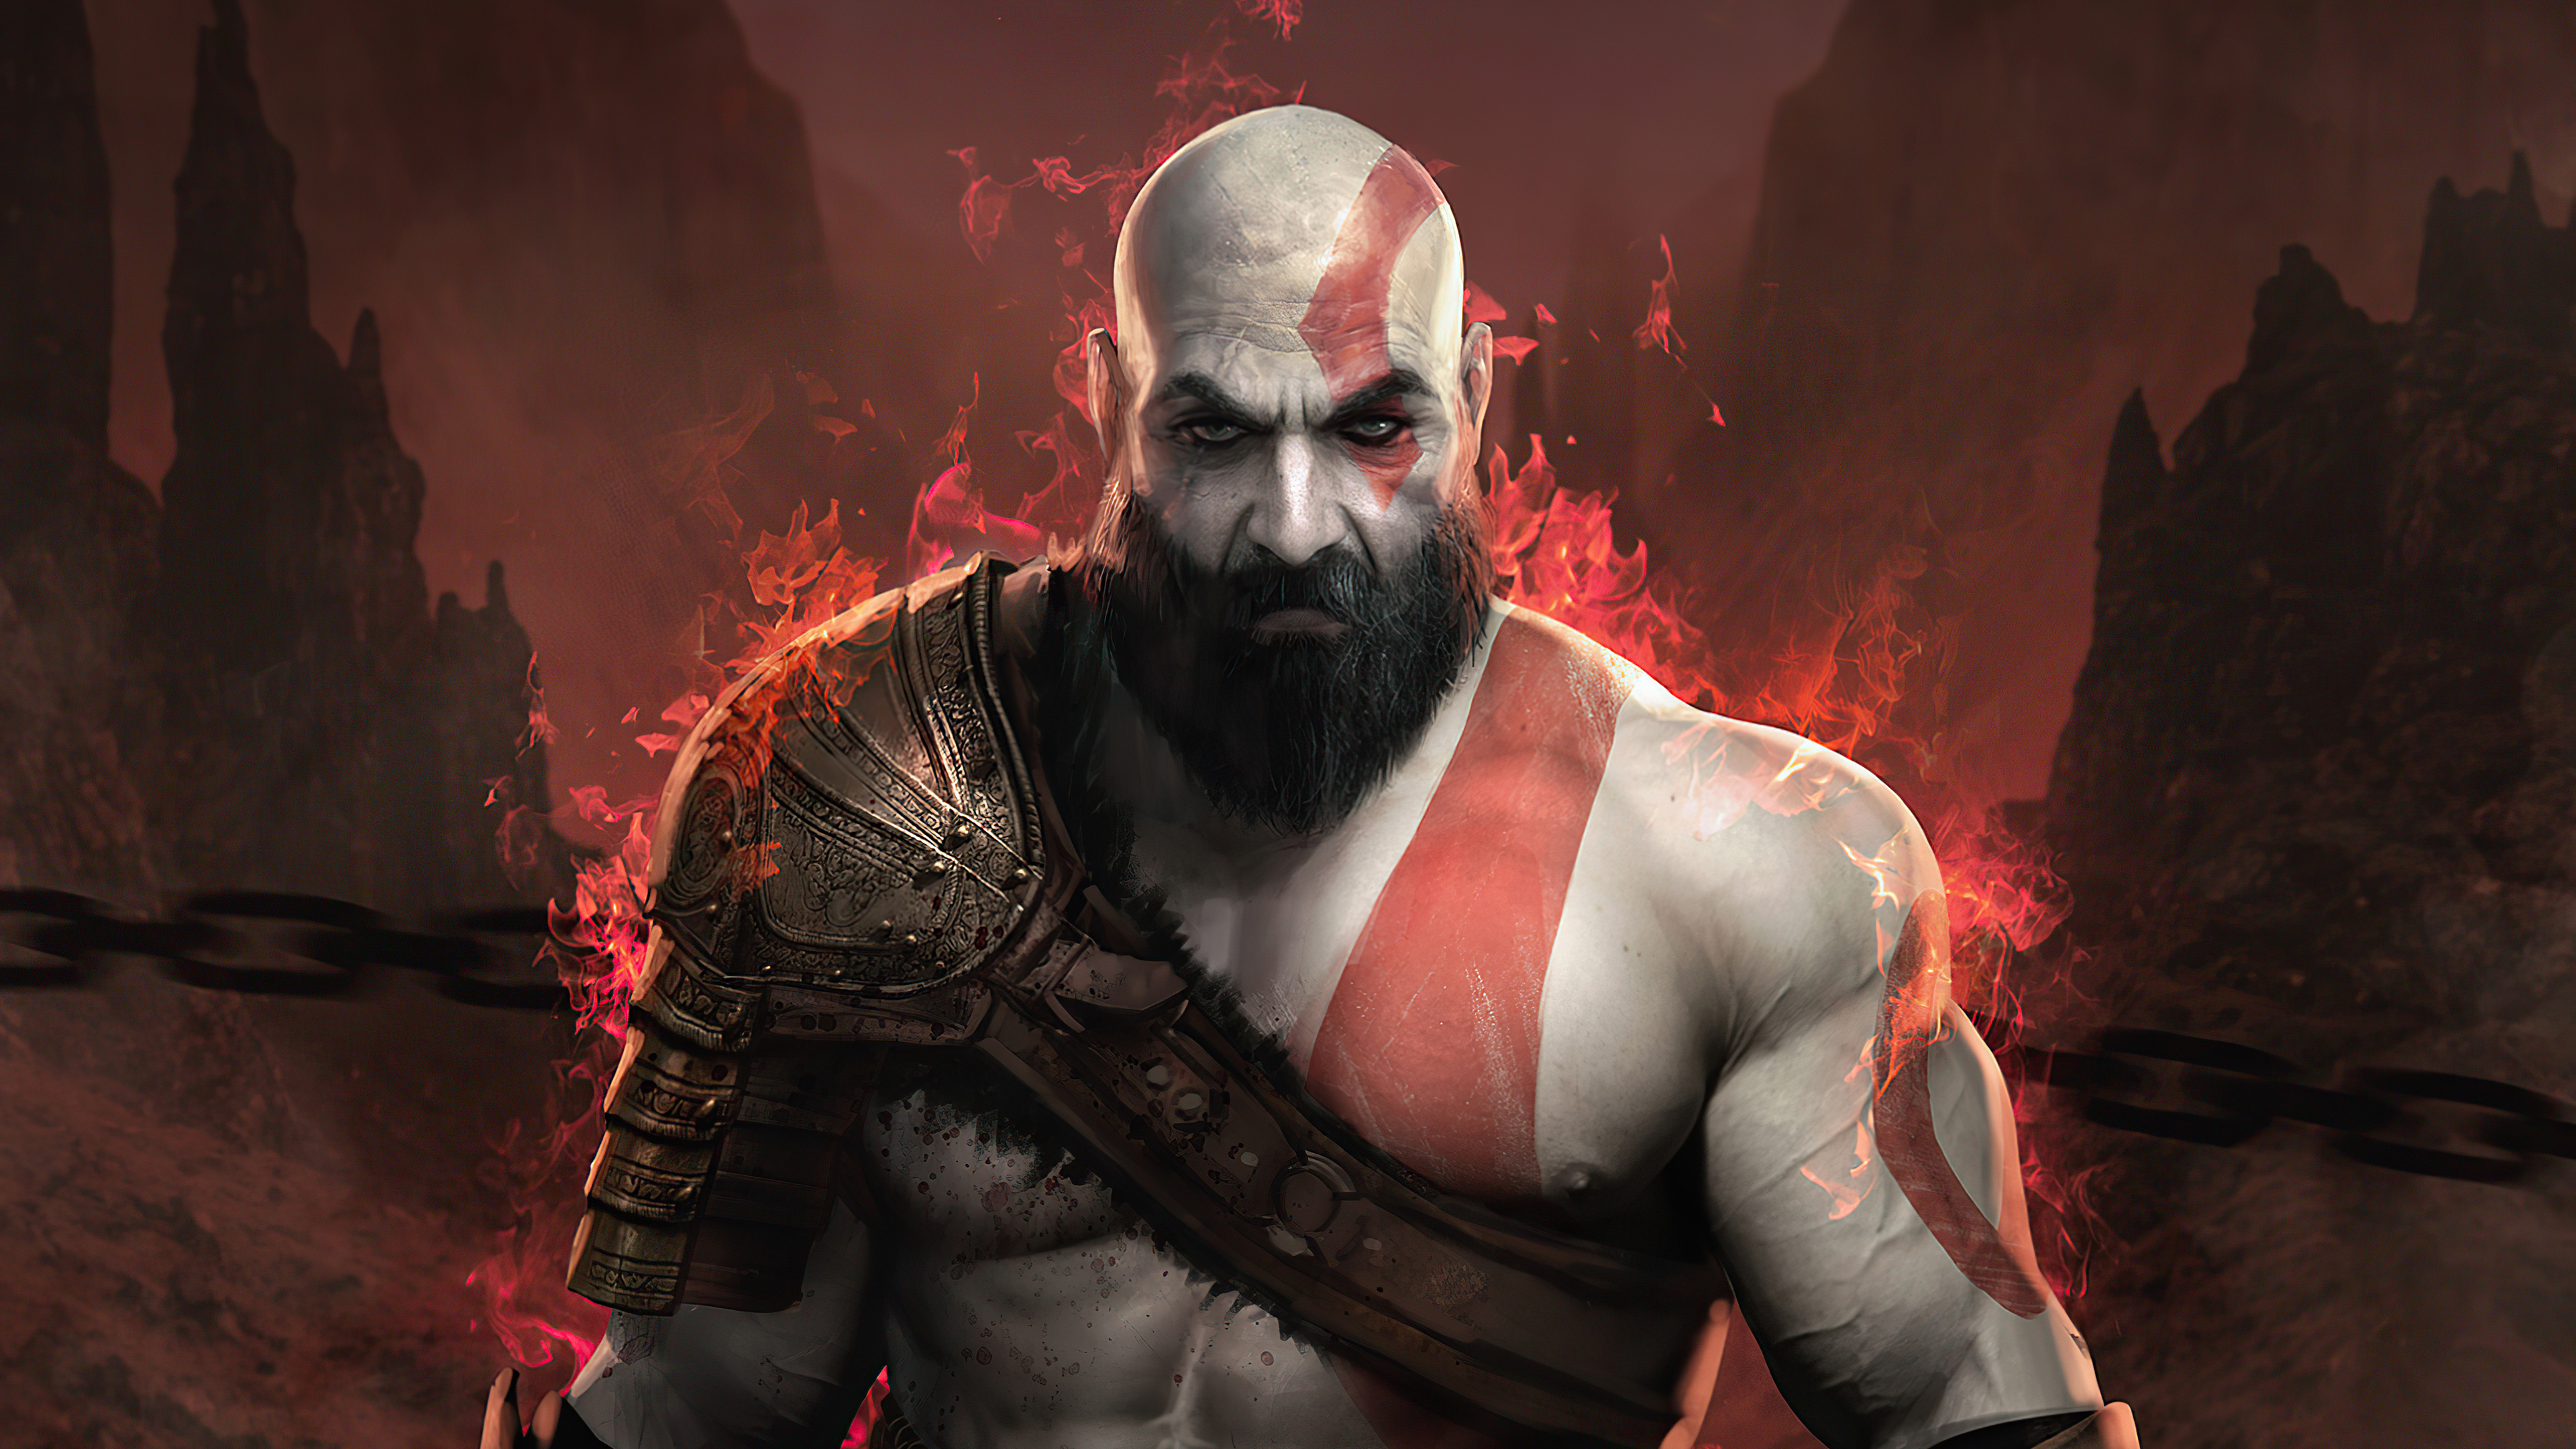 Fondos de pantalla Kratos de God of War 2020